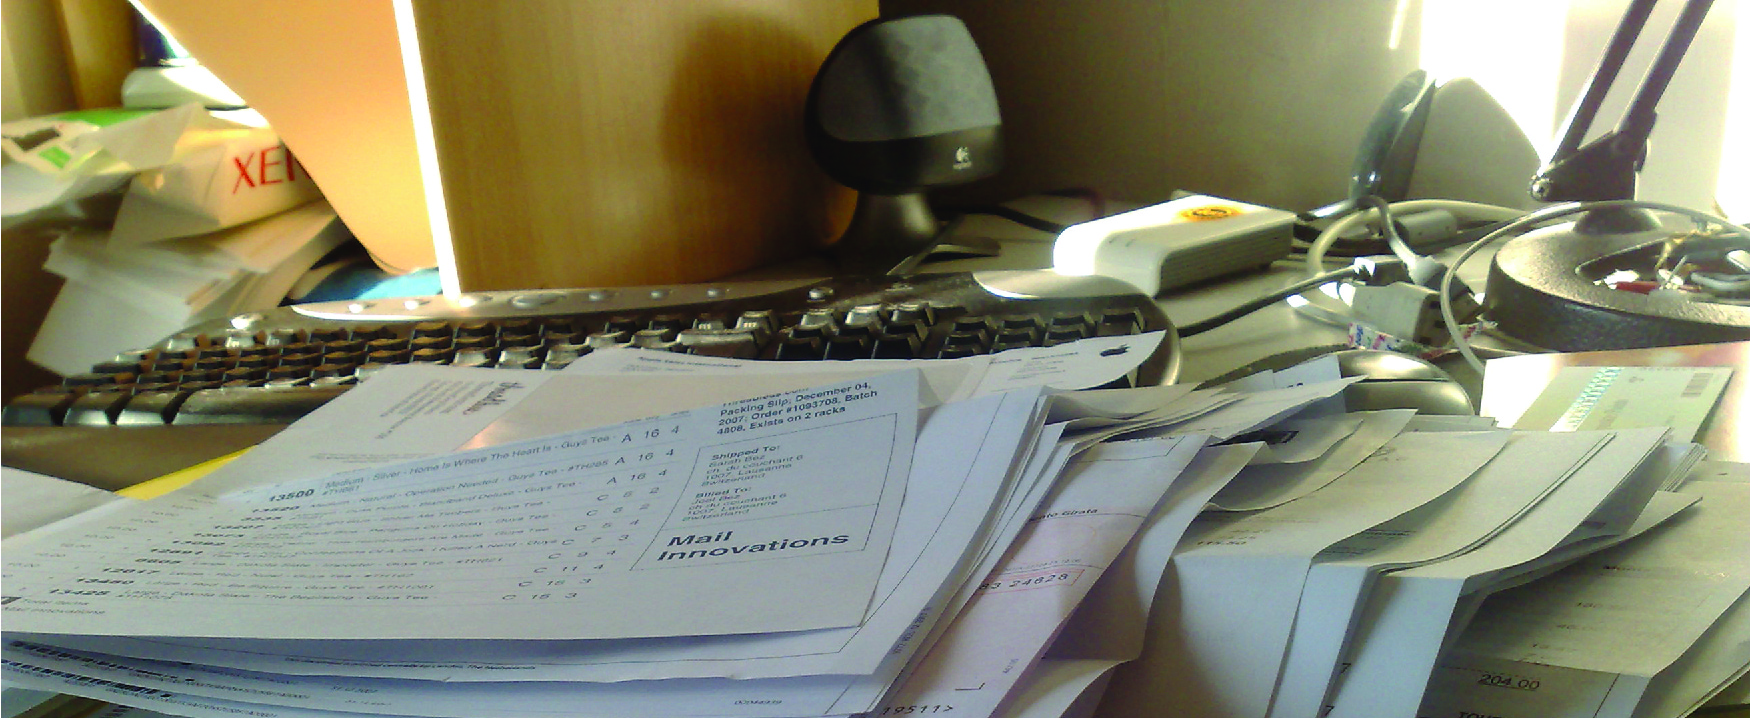 A photograph of a messy desk piled with papers, a computer keyboard in the background.